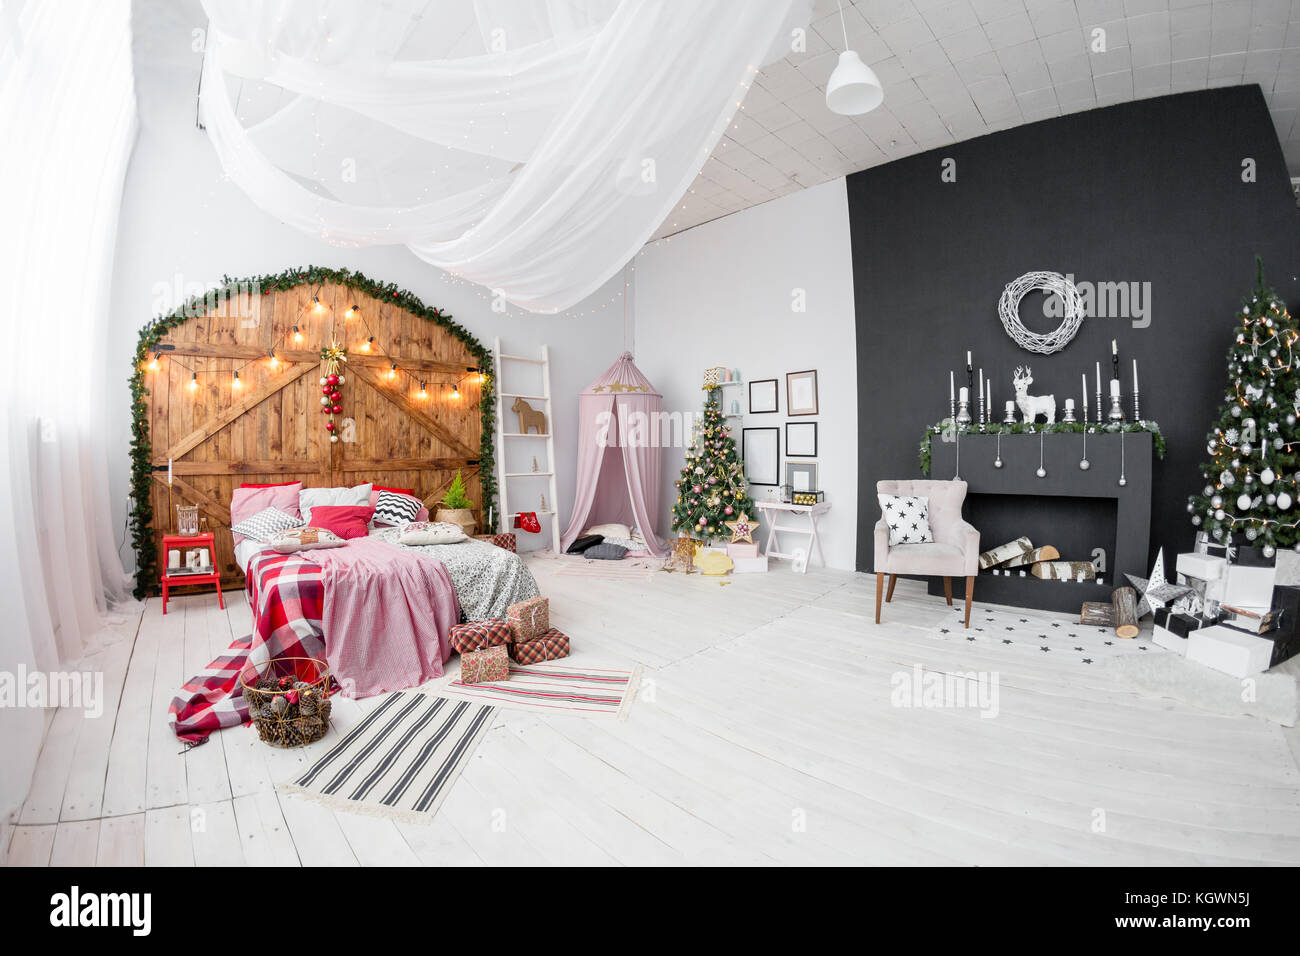 Space in the Photo studio with daylight. Christmas decorations. Stock Photo